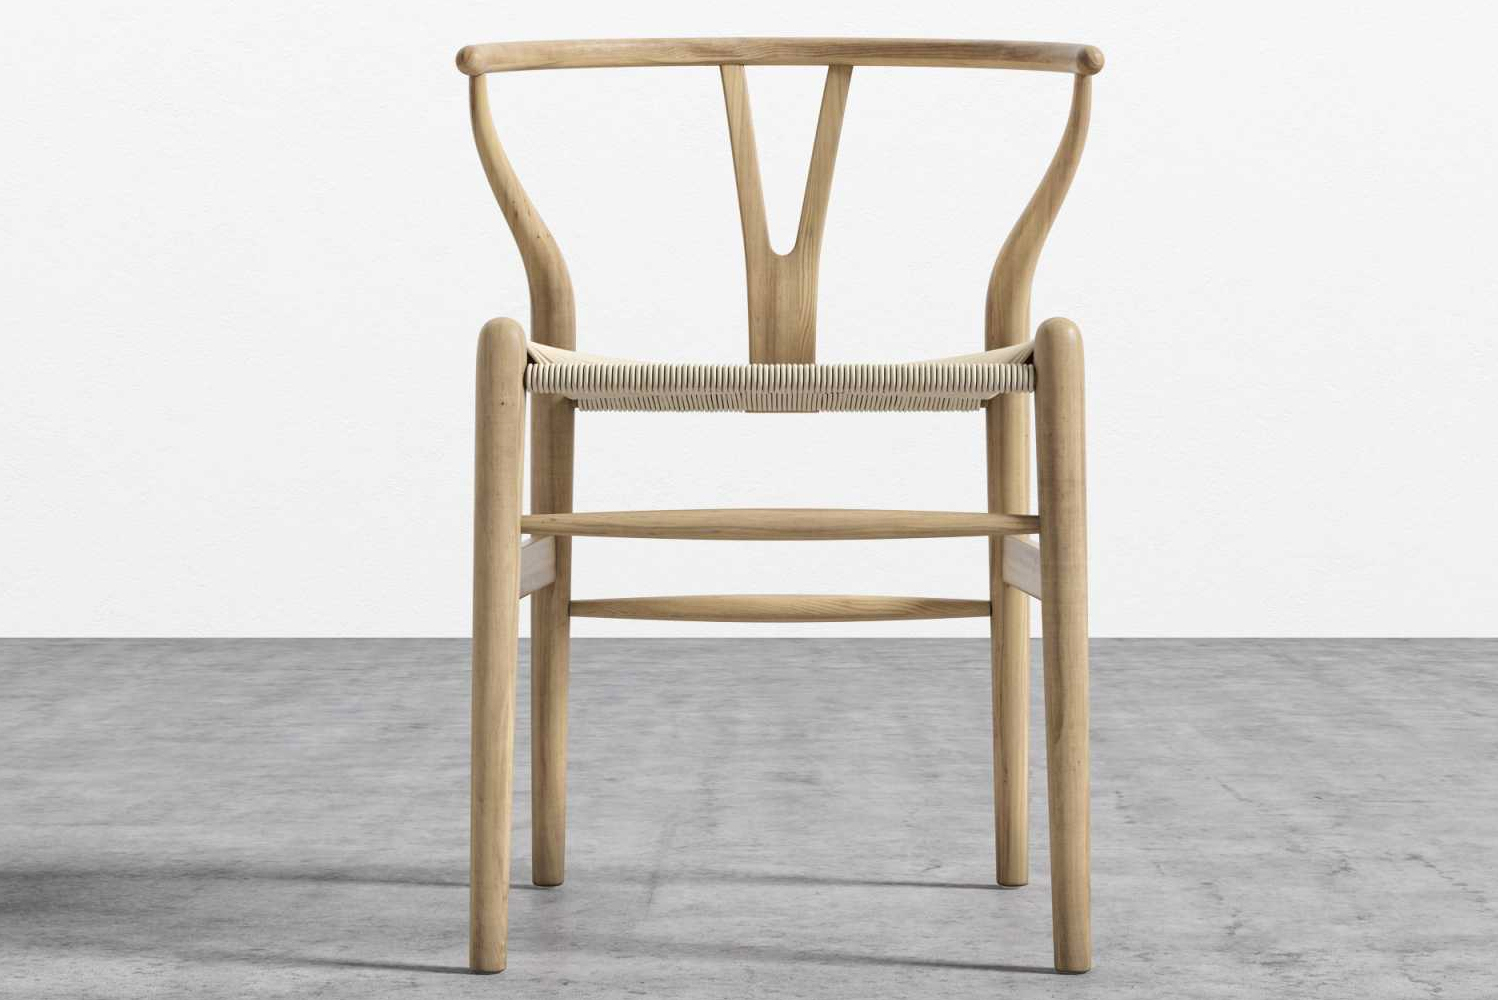 Introducing the Wishbone chair, a reproduction of one of the most classic designs from the mid-century modern era.